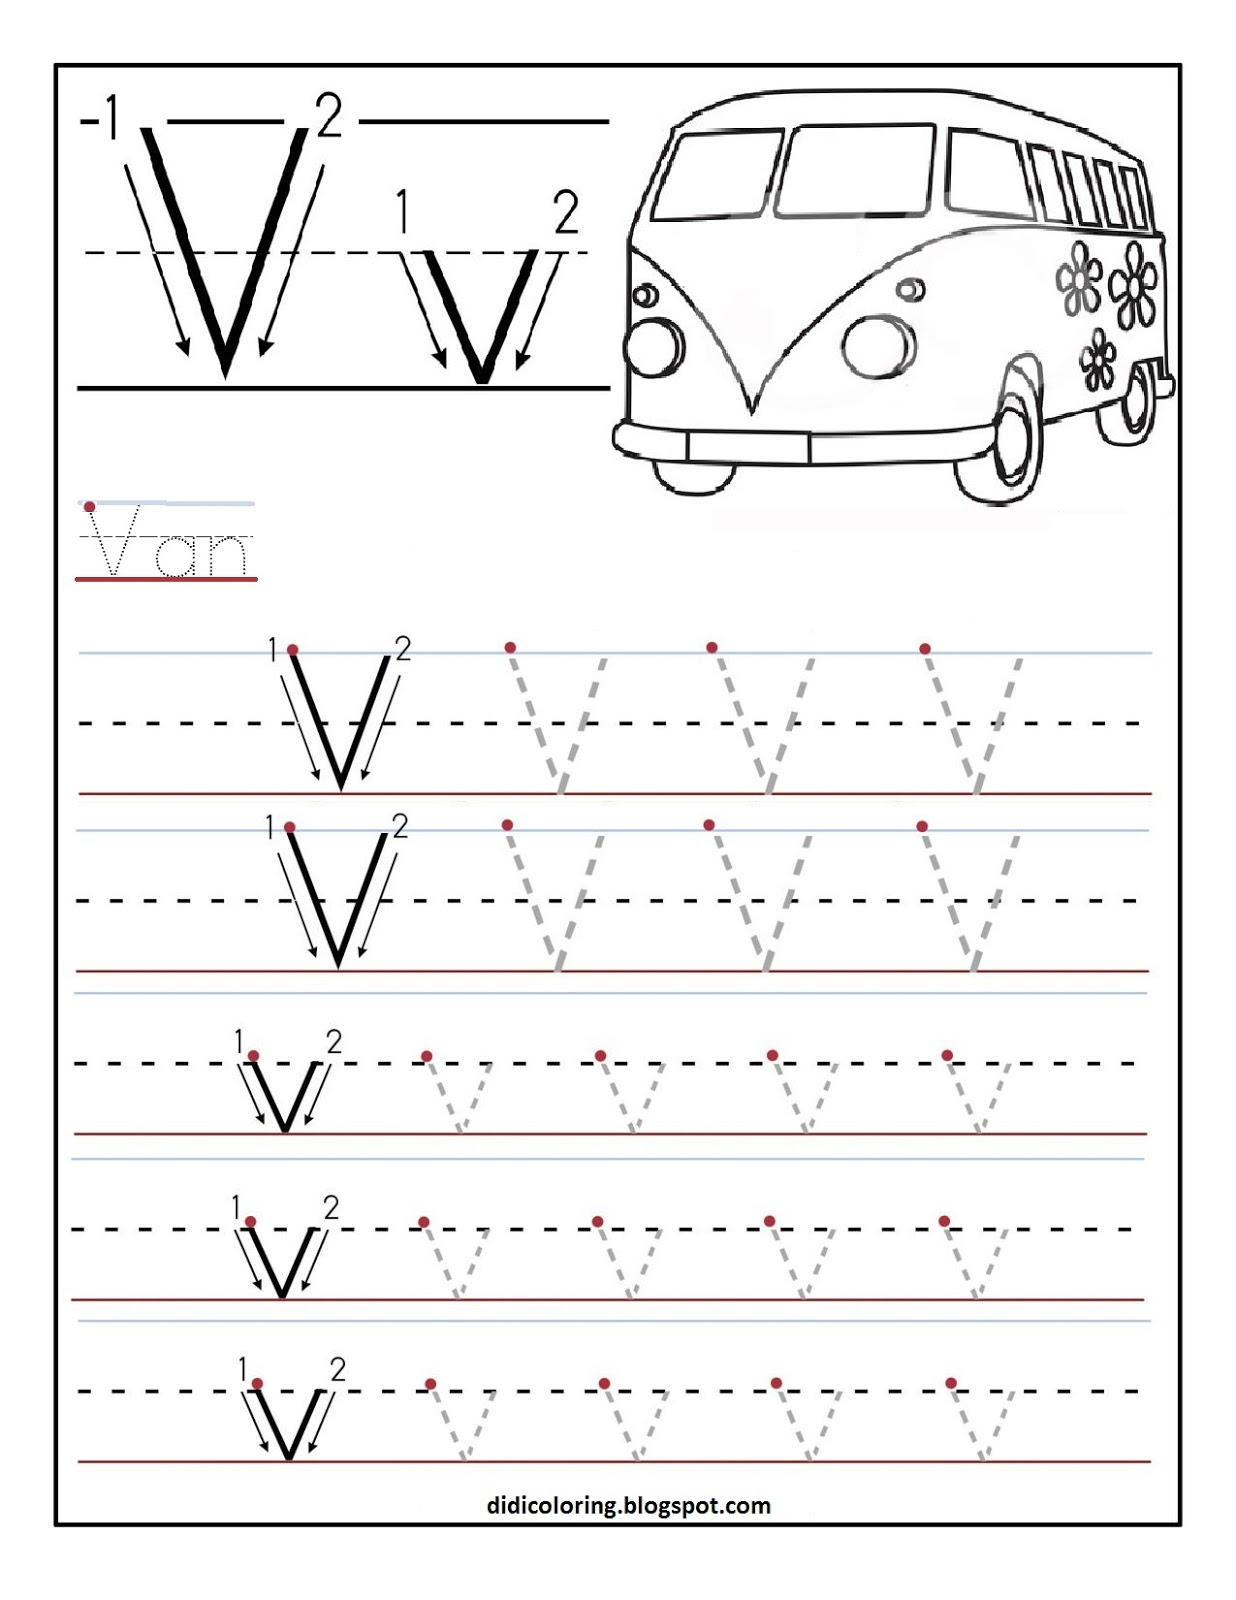 Letter V Worksheets &amp- Free Printables | Education.com